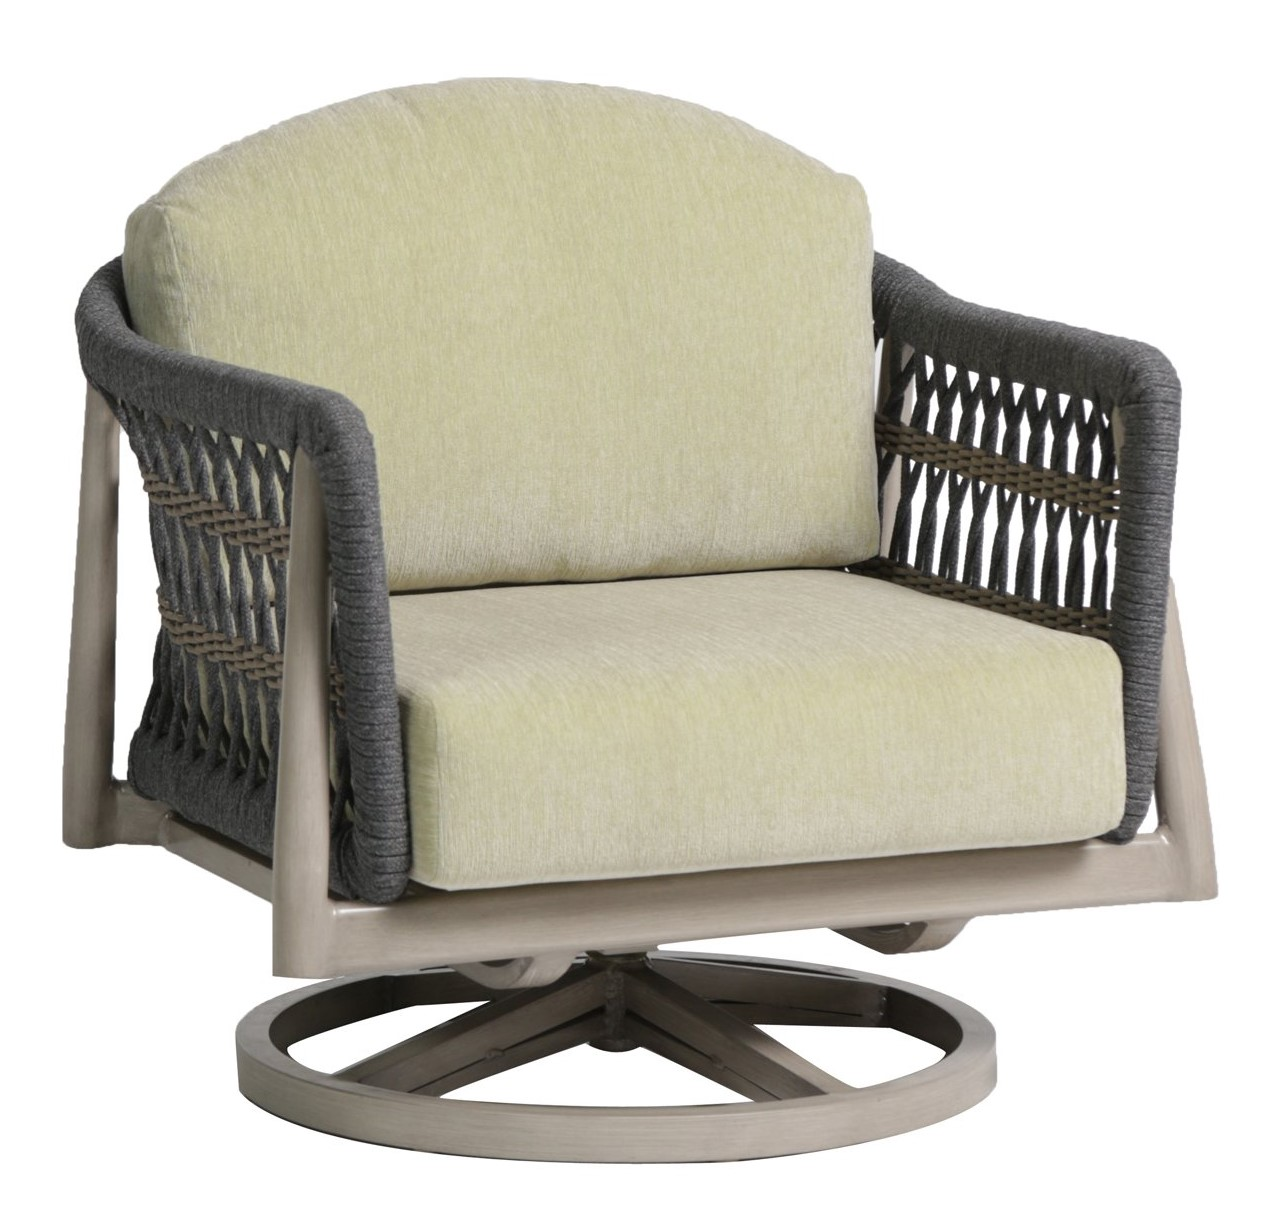 The Coconut Grove swivel rocker chair with aloe green cushions and grey rope sides.